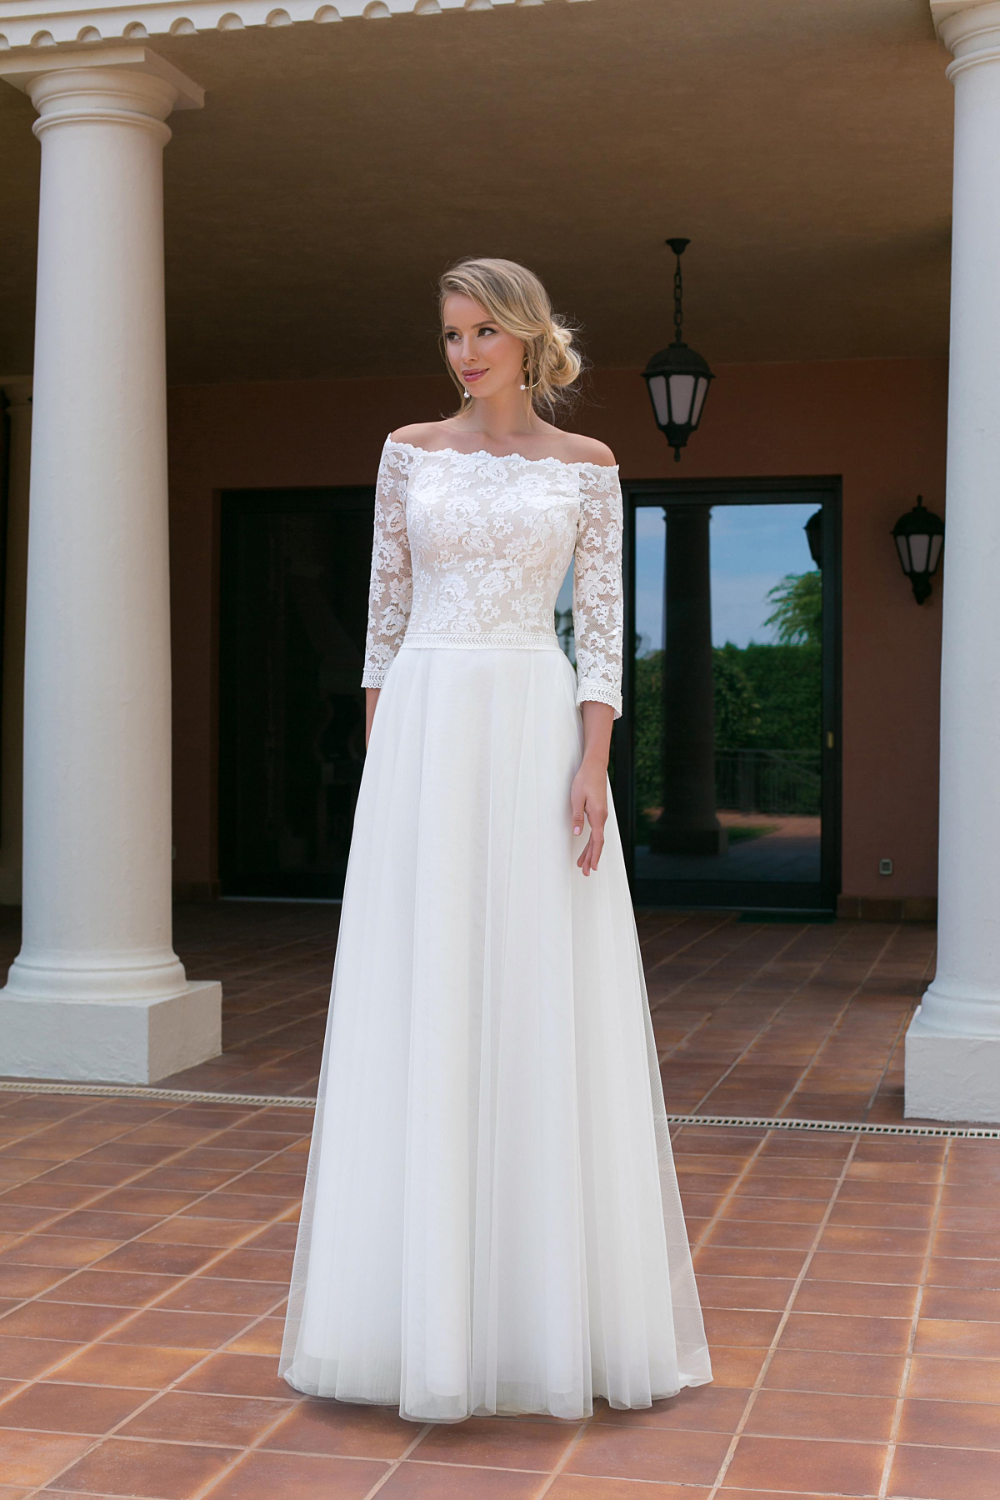 Angela Bianca 1021 Ivory Size 14 625 Now 99 Available At Debra S Bridal Jacksonville Fl 32256 Contact Us T Beach Wedding Gown Wedding Dresses Dresses [ 1500 x 1000 Pixel ]